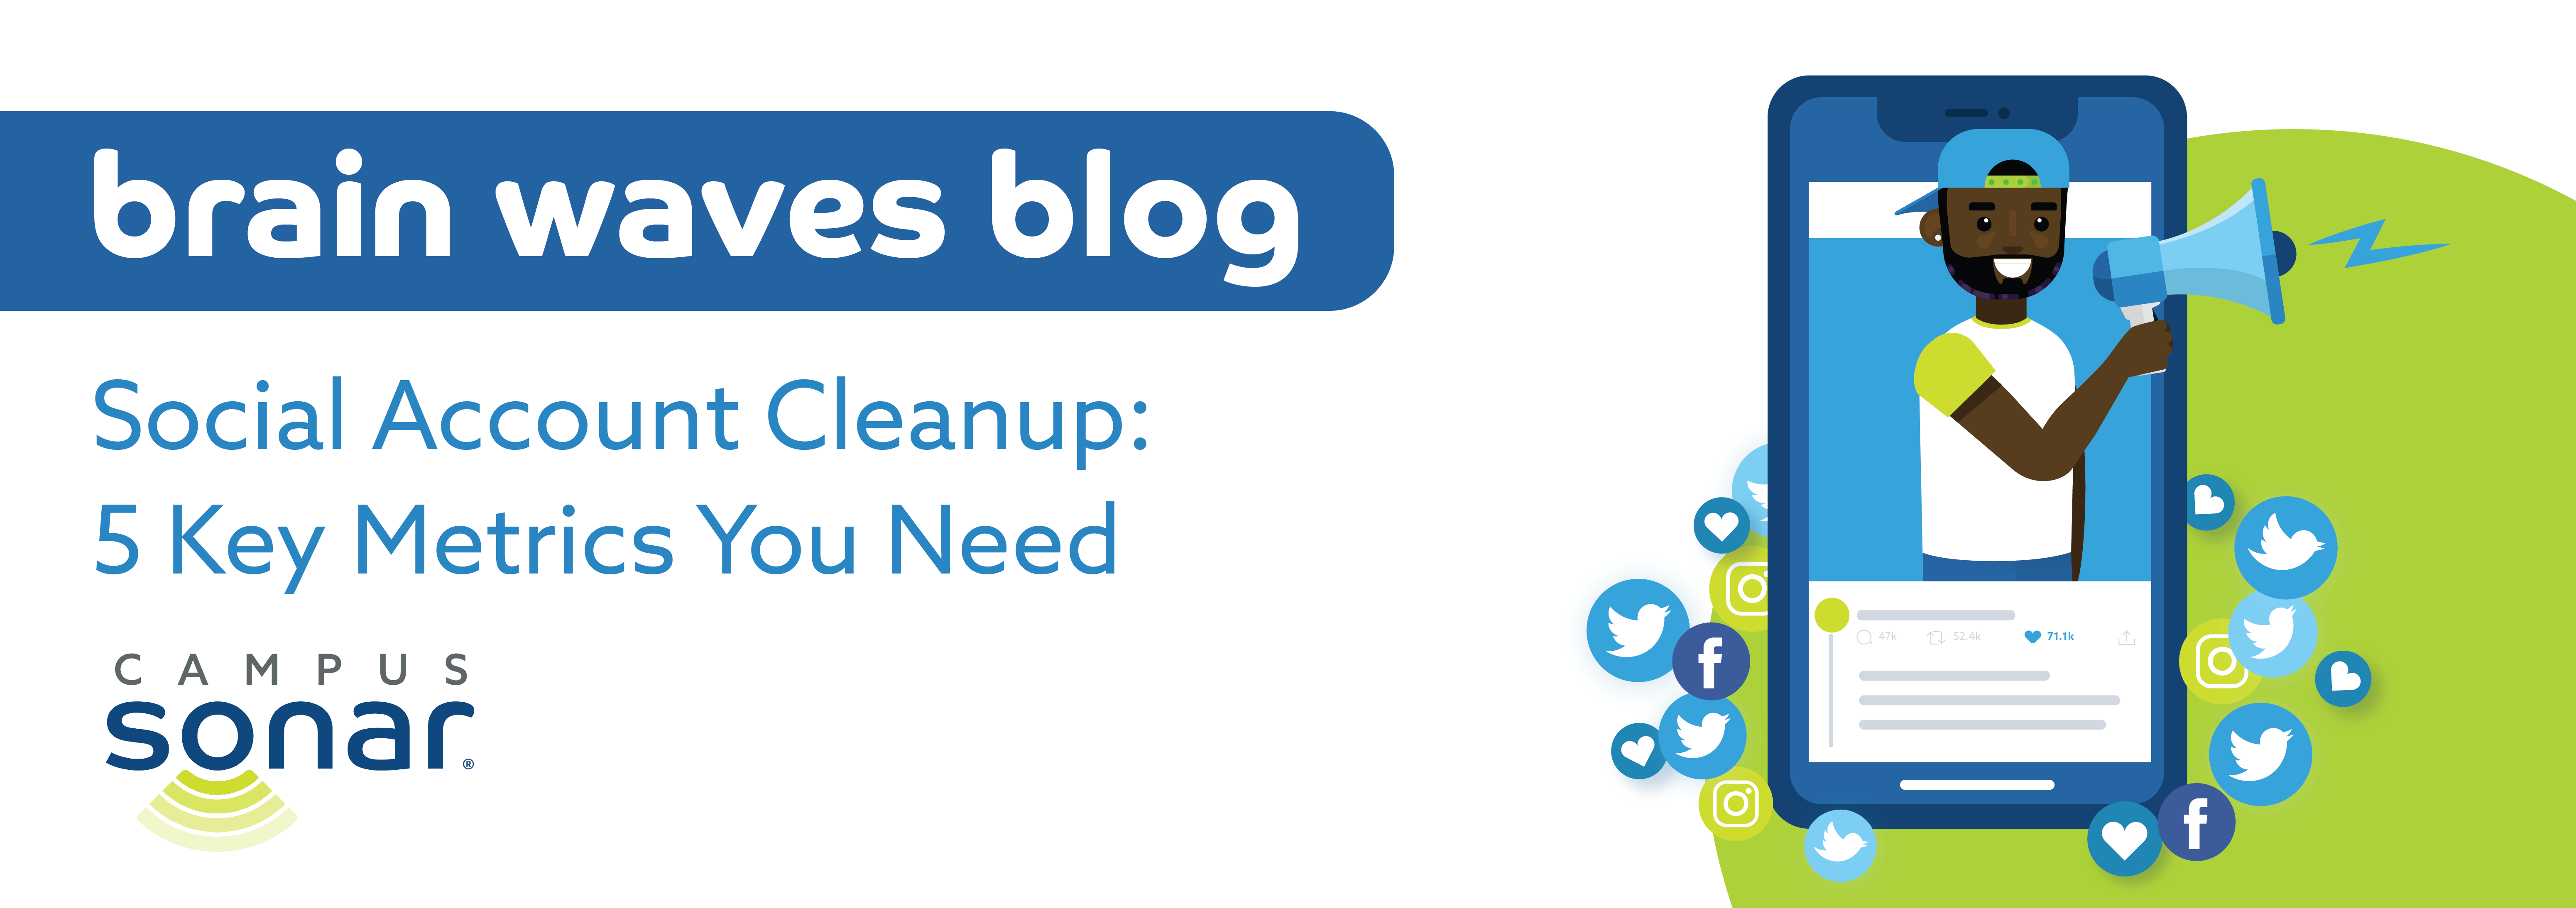 Blog post image for Social Account Cleanup: 5 Key Metrics You Need